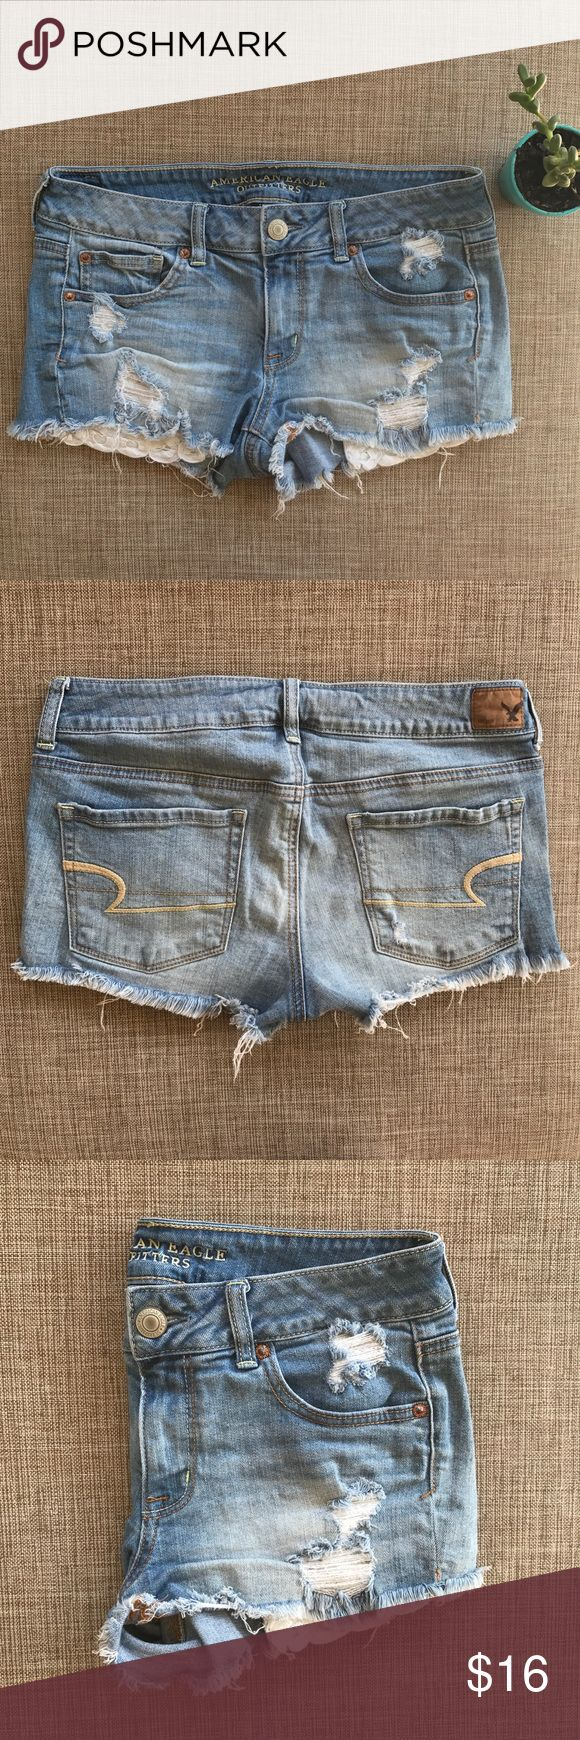 American Eagle Destroyed Denim Shorts Sooooo cute. Super destroyed & feminine detailed shorts by American Eagle. Lots of lovely little distressing details & decorated pockets really play up the lady likeness of these daisy duke style denim shorties! You'll never want to take these off! I promise! ✨ American Eagle Outfitters Shorts Jean Shorts